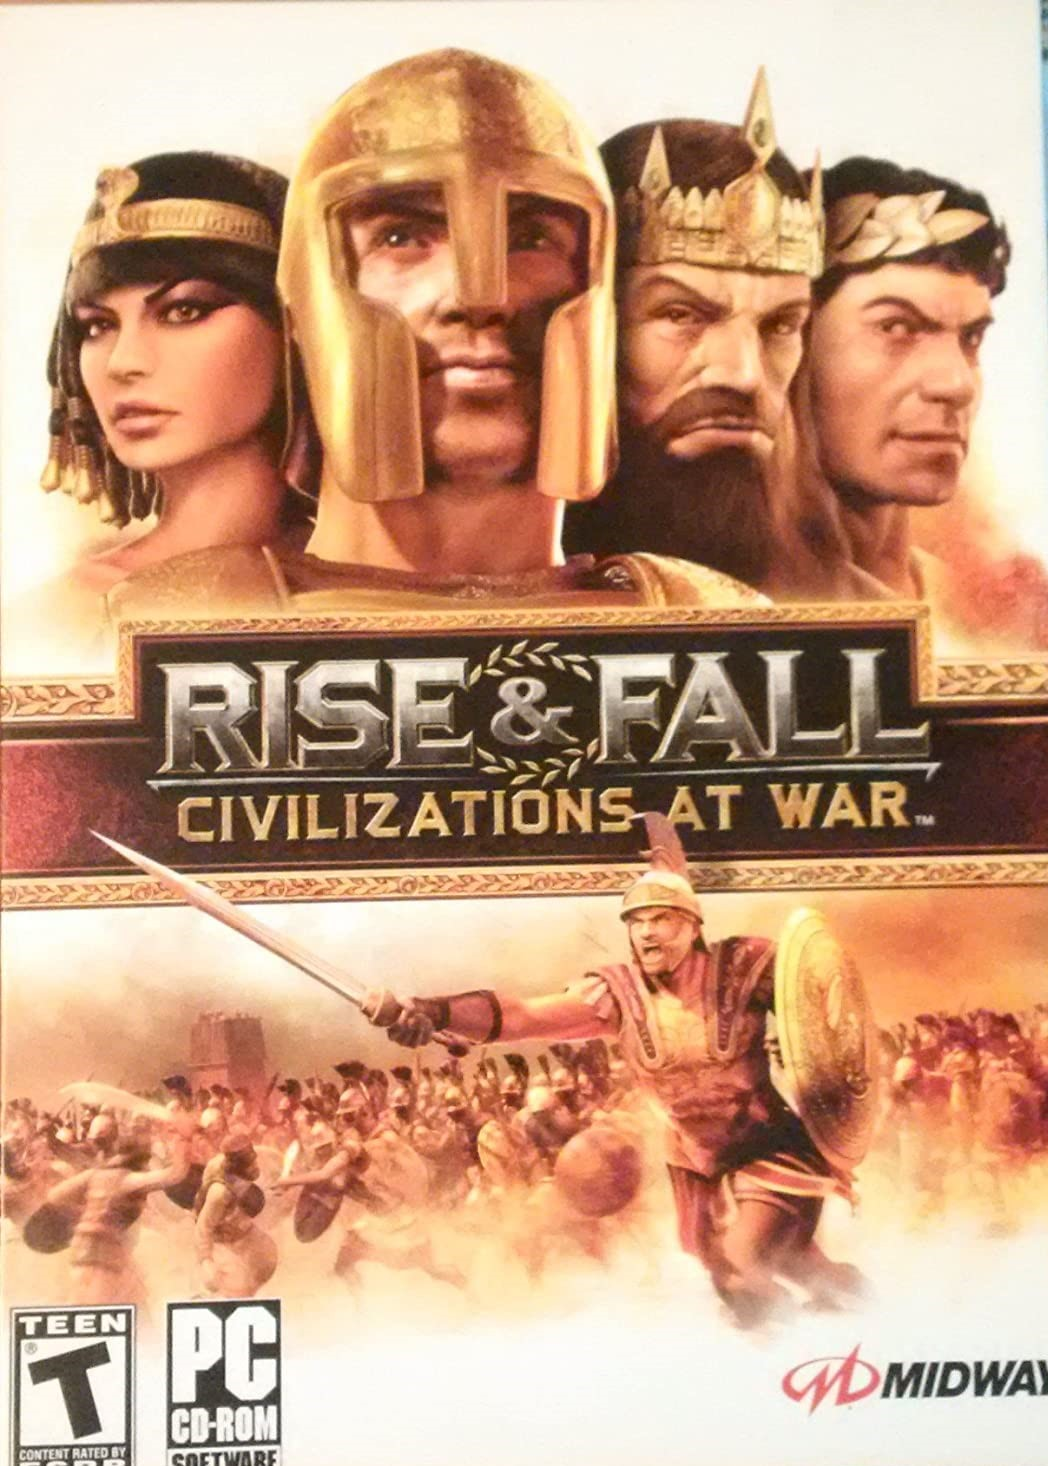 دانلود بازی Rise and Fall: Civilizations at War برای PC